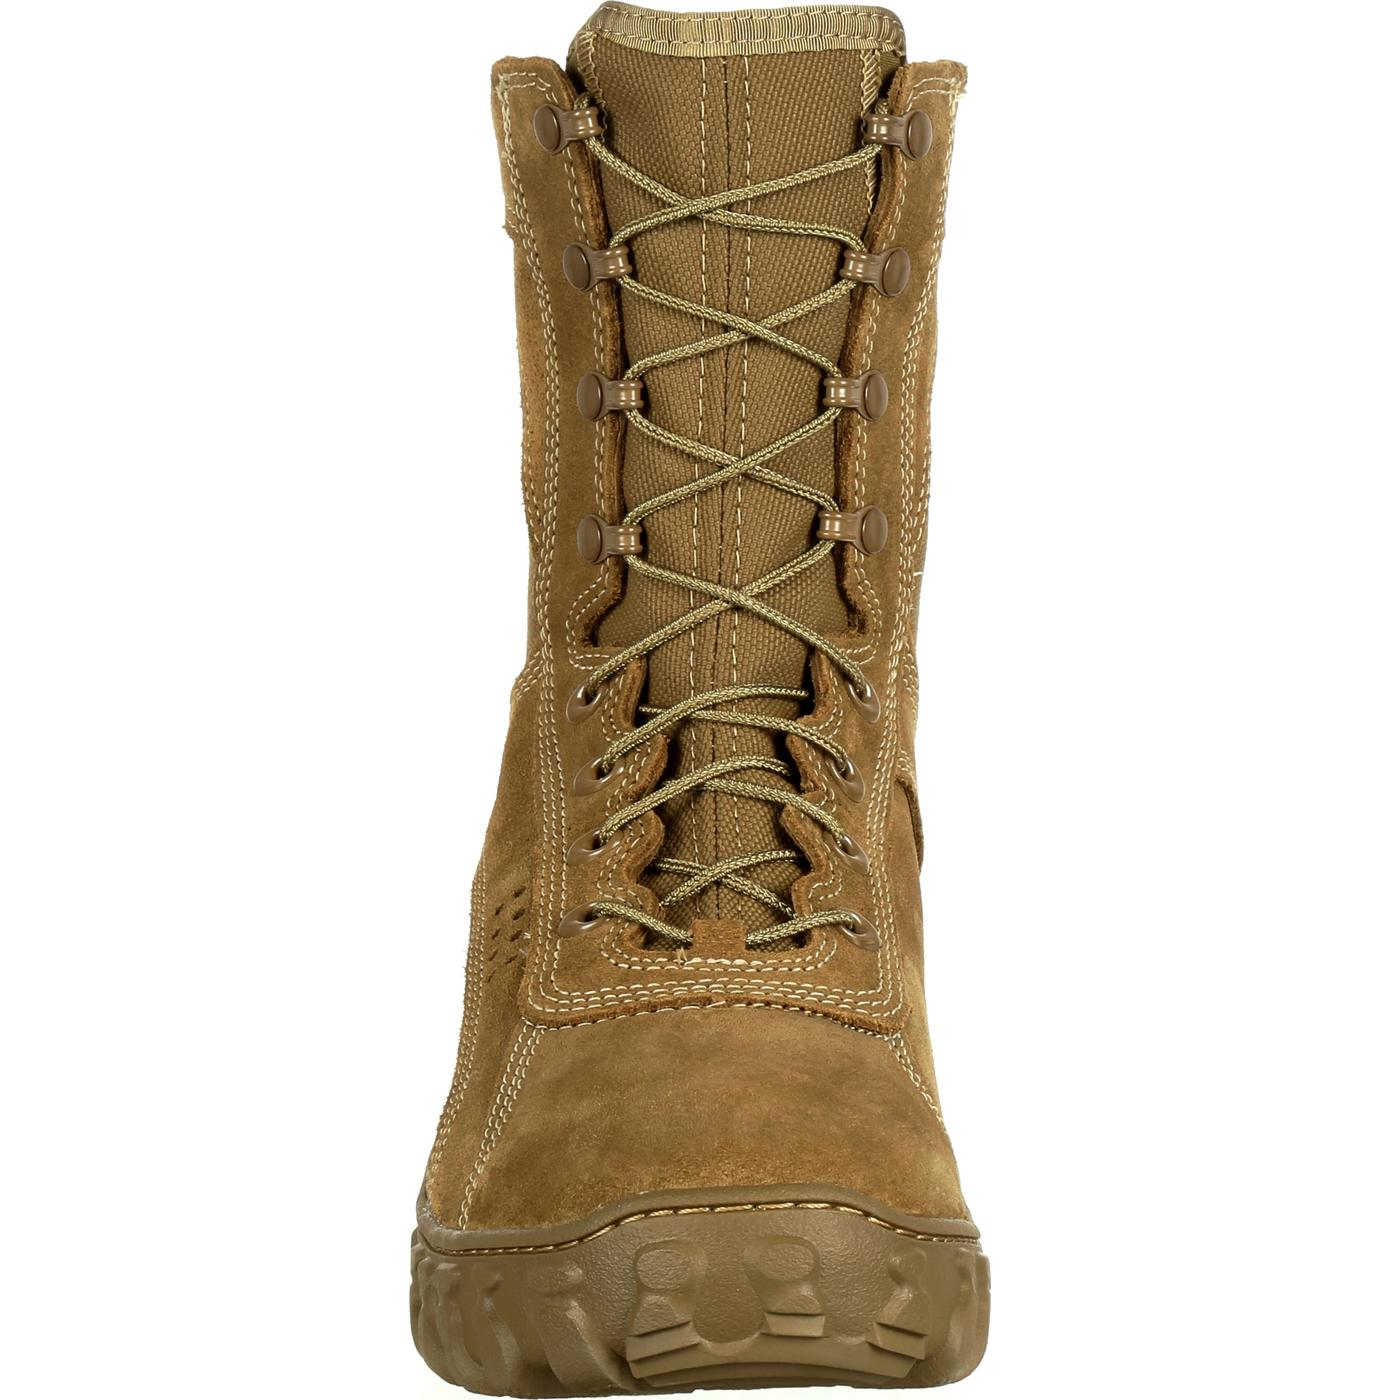 Coyote Brown Military Boot Rocky S2v Rkc050